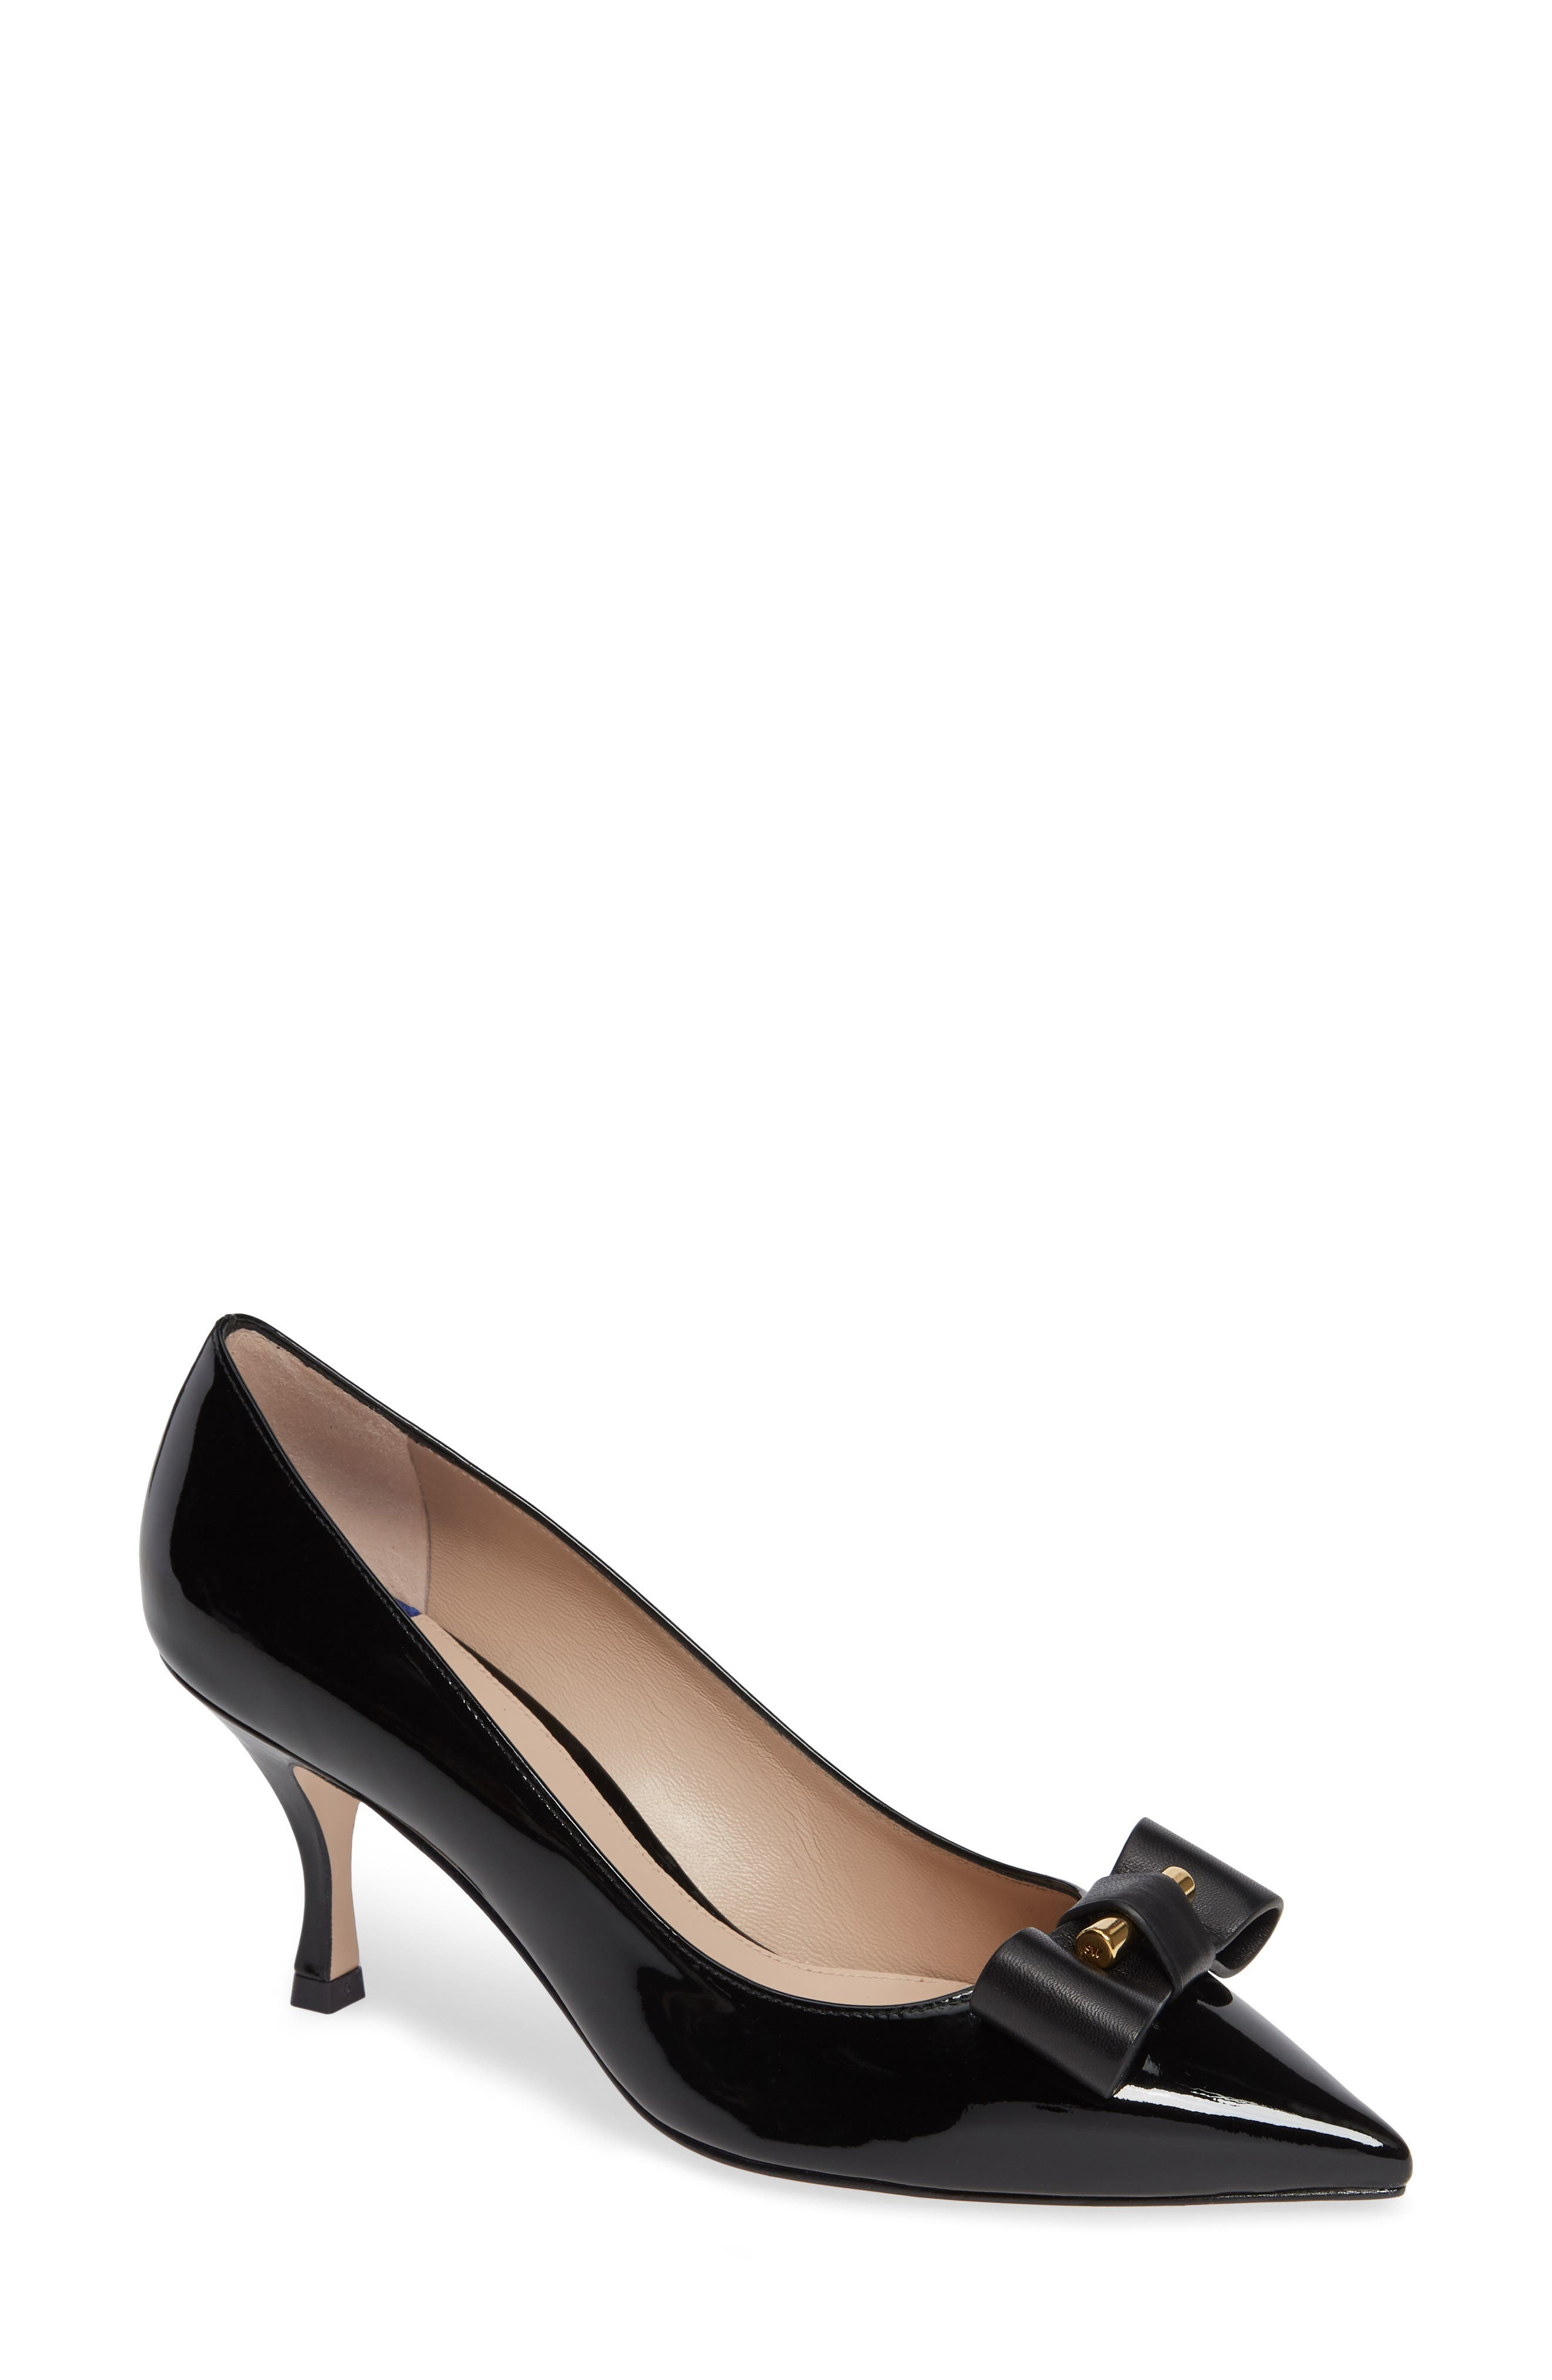 Belle Pointe Shiny Leather Bow Mid-Heel Pumps in Black Cristal